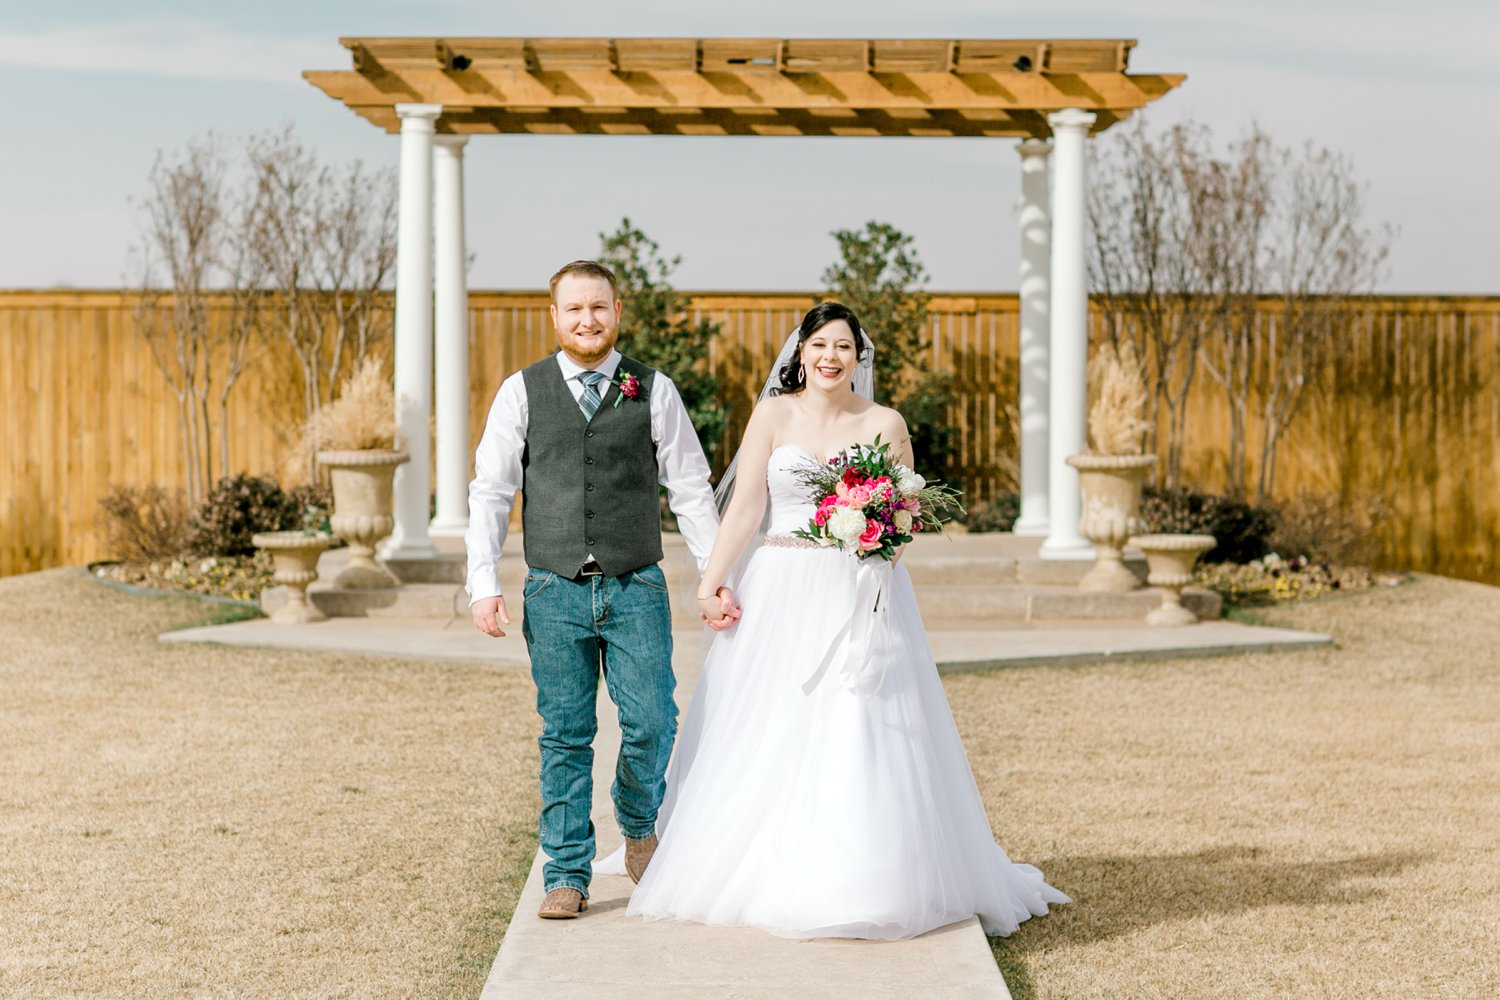 Autumn-Oaks-Events-Morgan-Andy-Lane-Wedding-Lubbock-Photography__0038.jpg